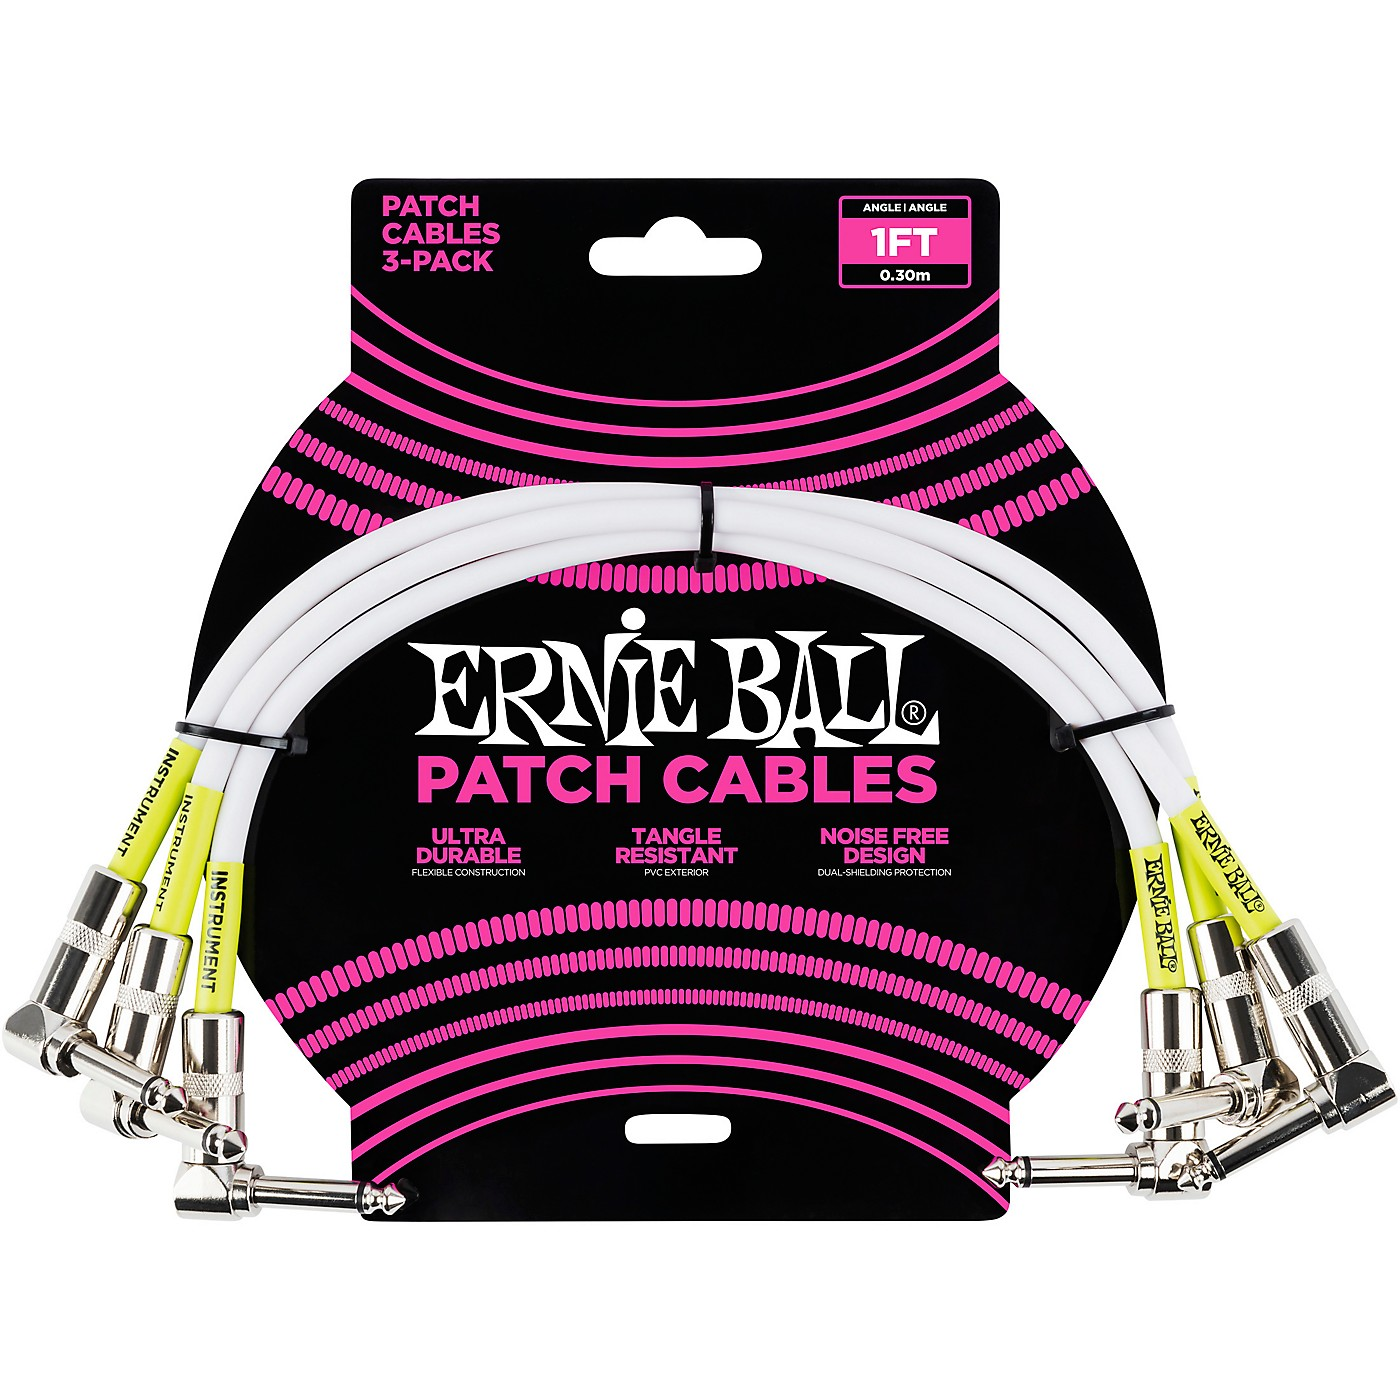 Ernie Ball 3-Pack Patch Cables thumbnail